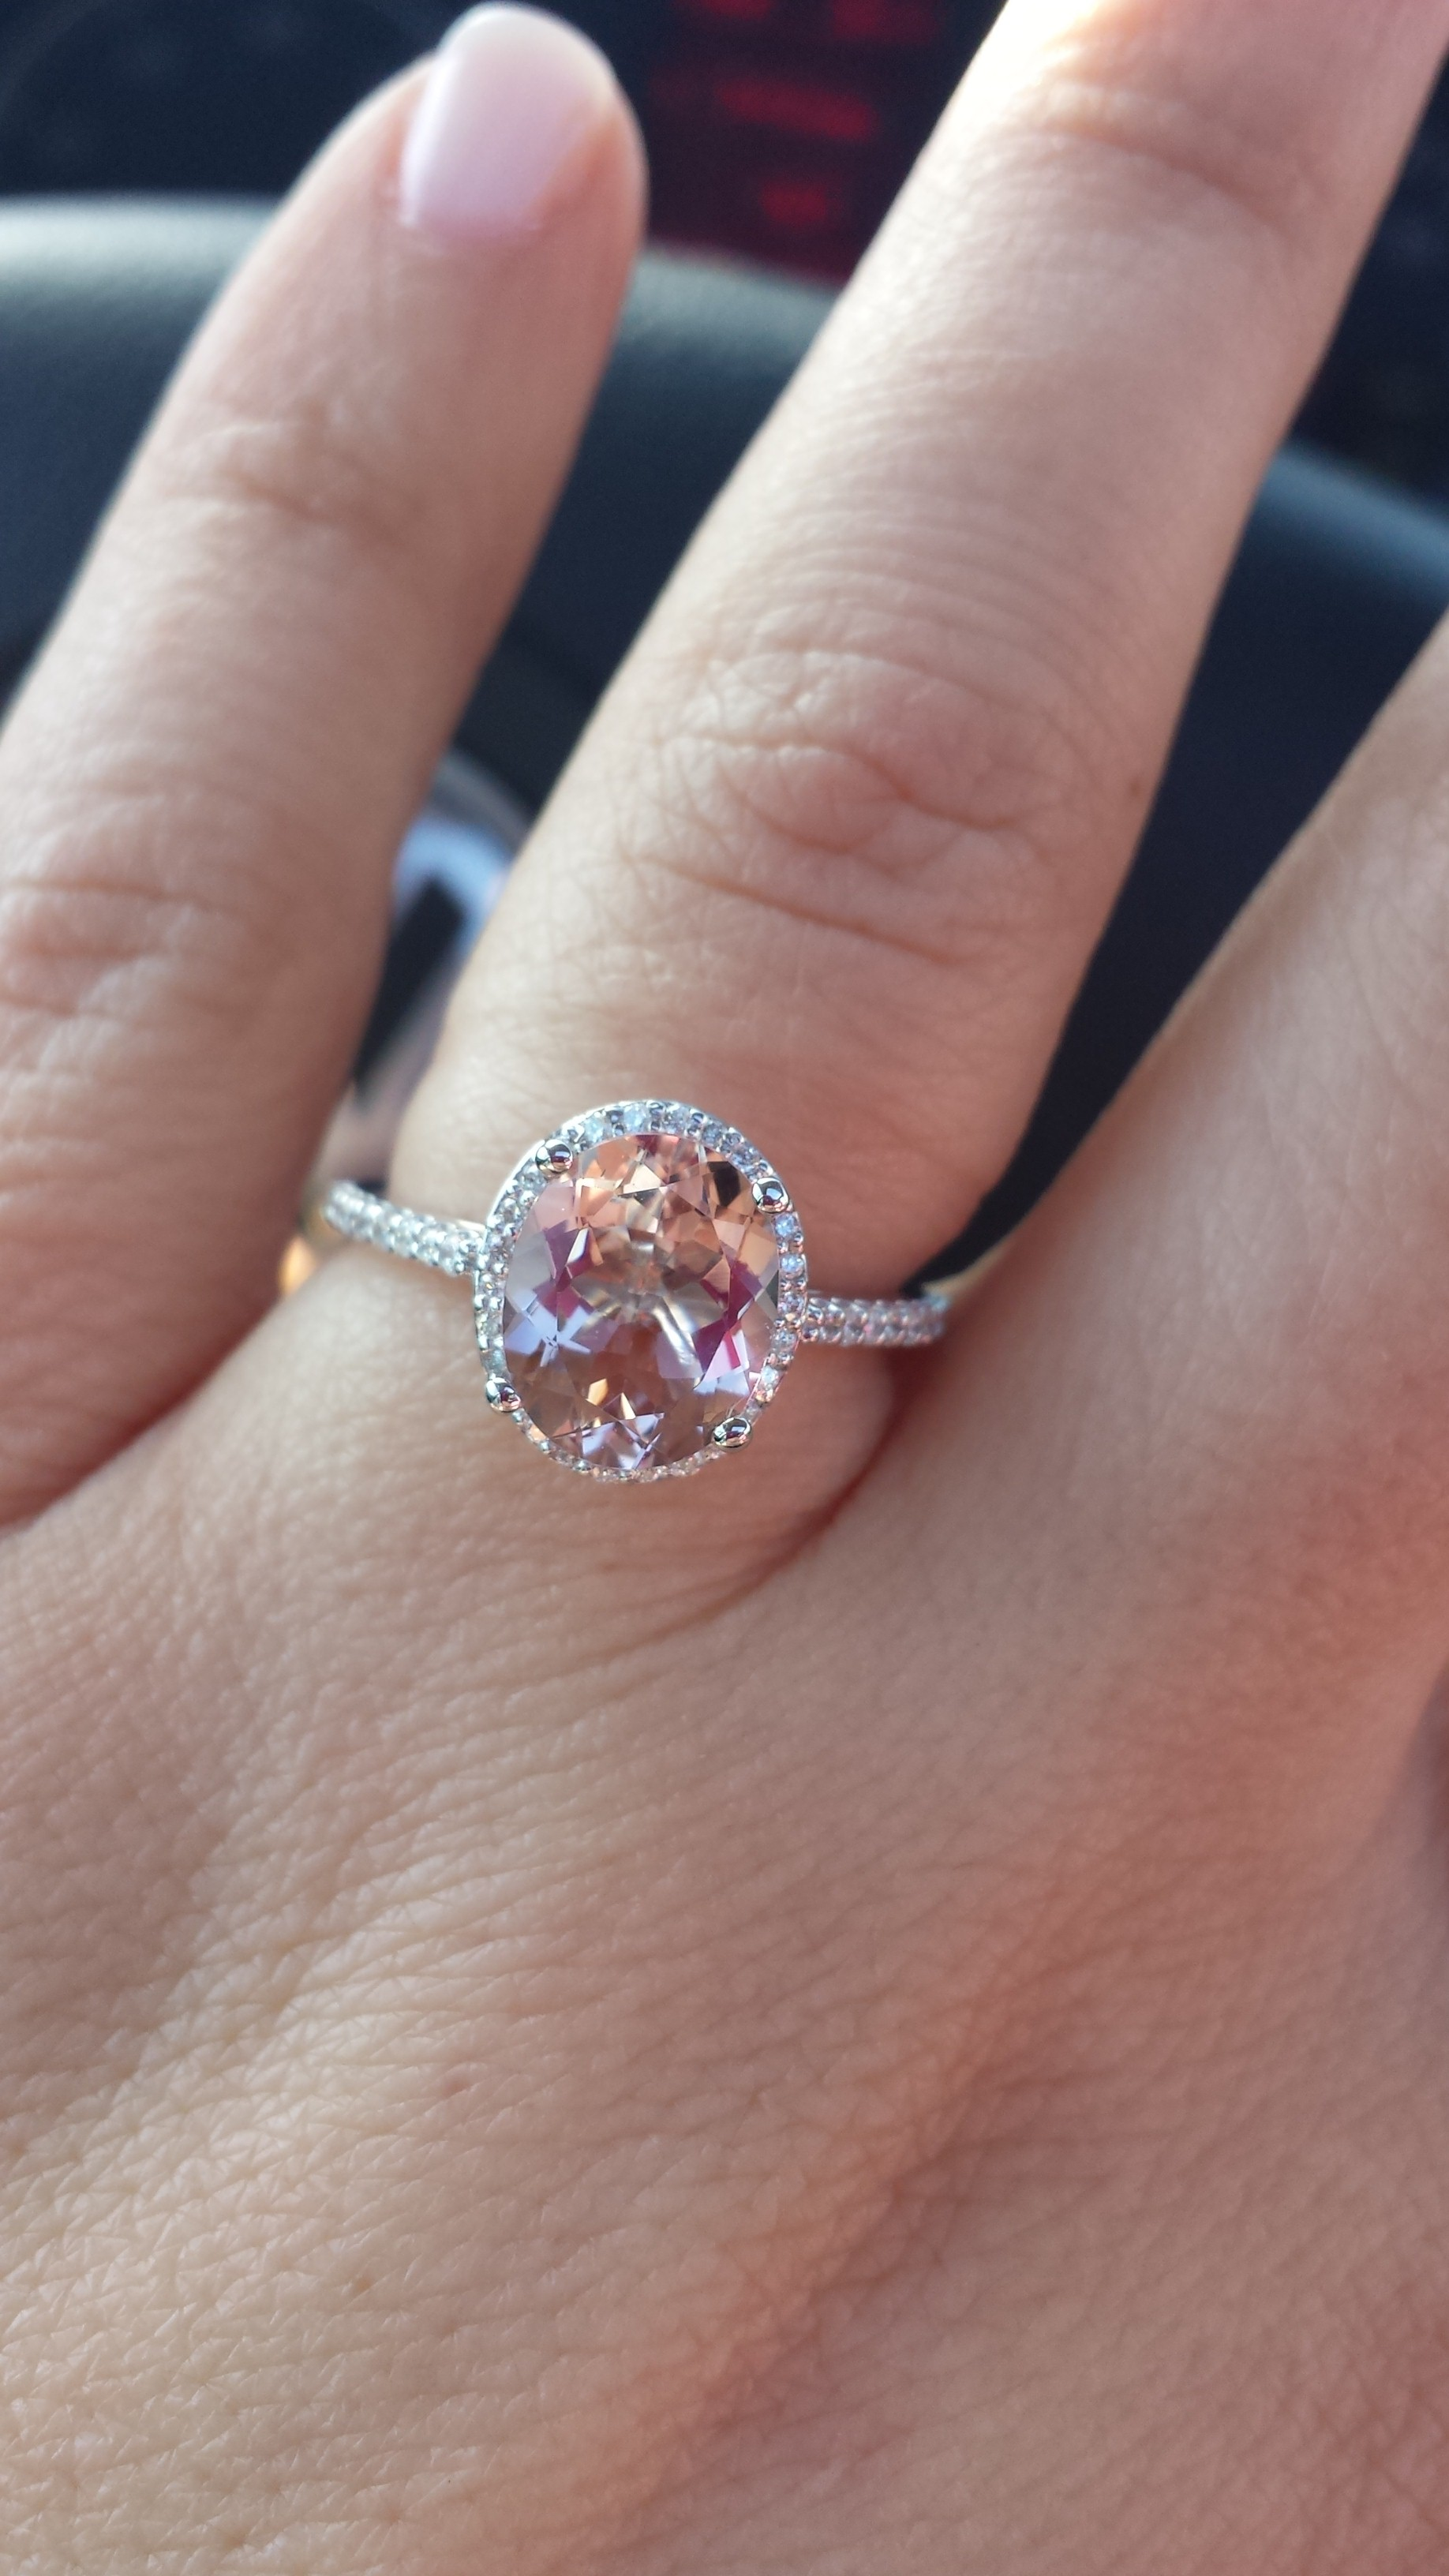 opinion on morganite engagement ring show me your engagement rings giant wedding ring My ring was from etsy and the jeweler was amazing And cheaper than what you ve been quoting PM me if you want his info Good luck